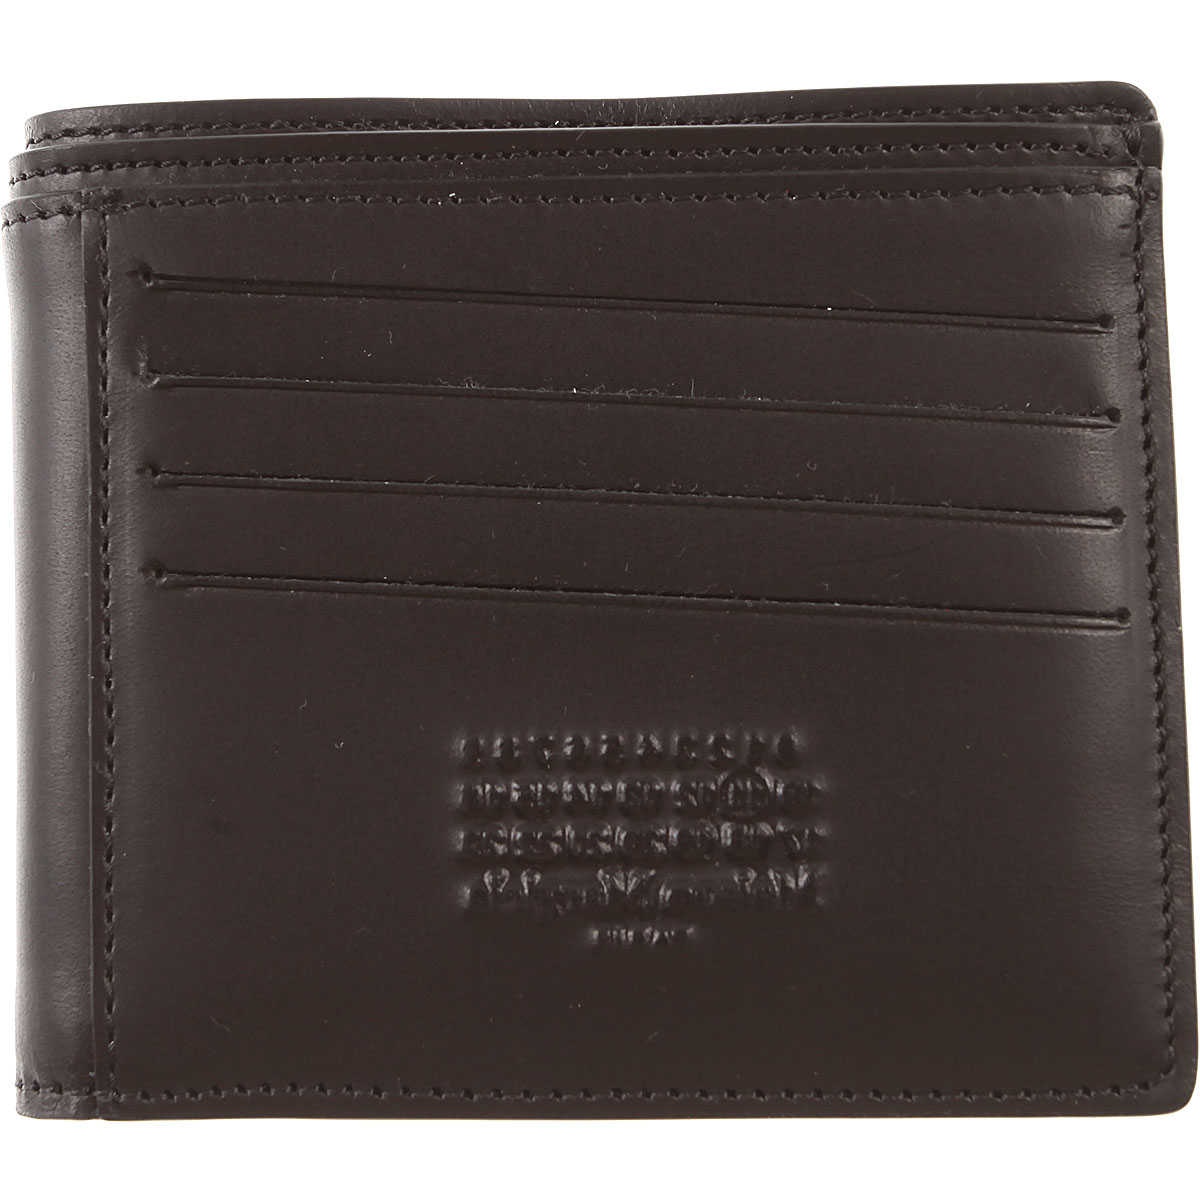 Maison Martin Margiela Wallet for Men On Sale Black SE - GOOFASH